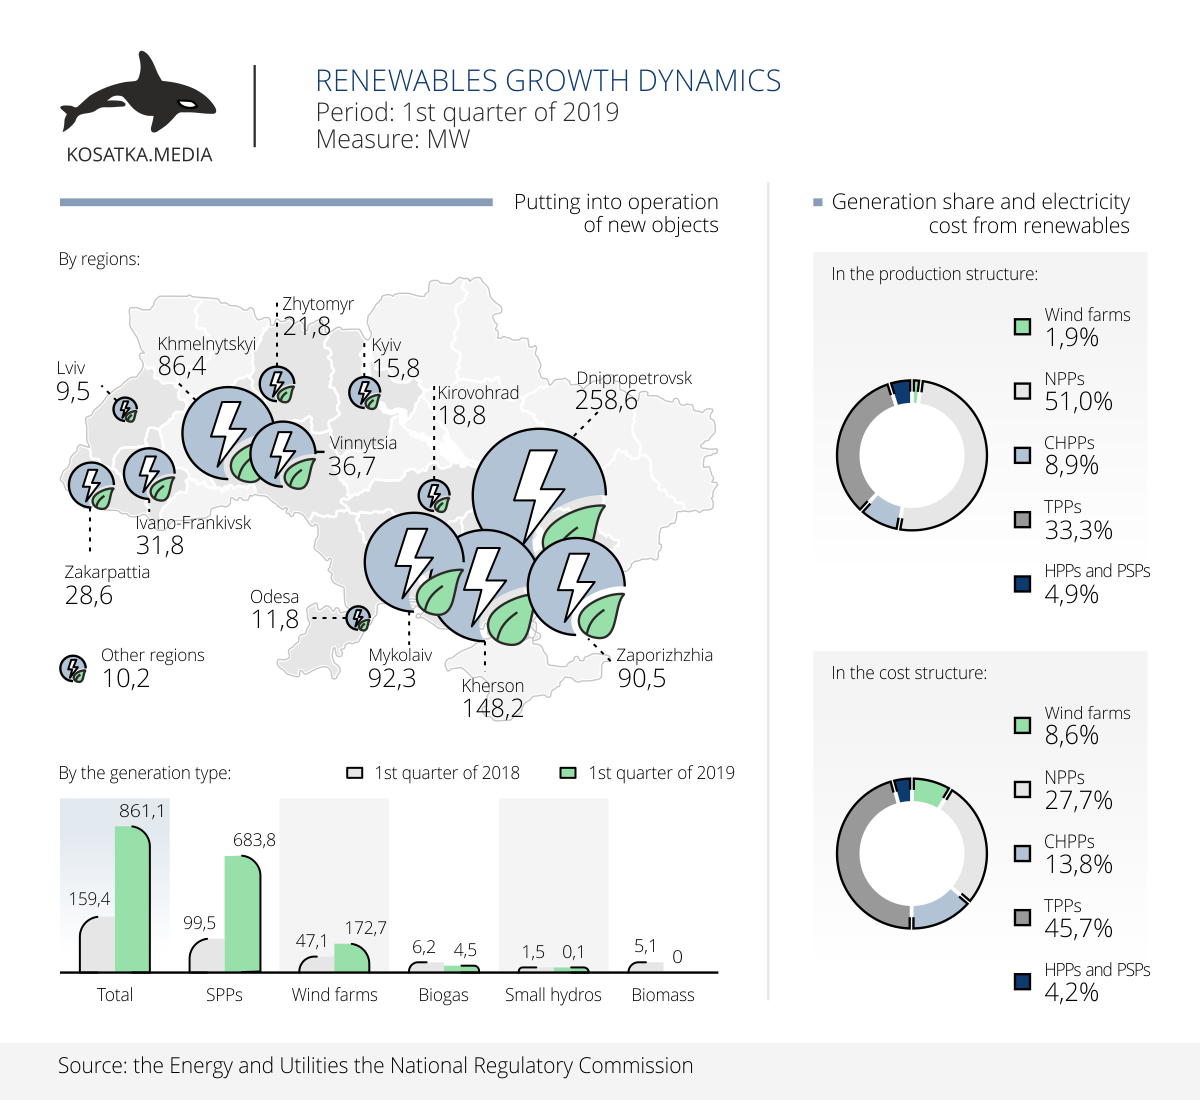 Renewables growth dynamics